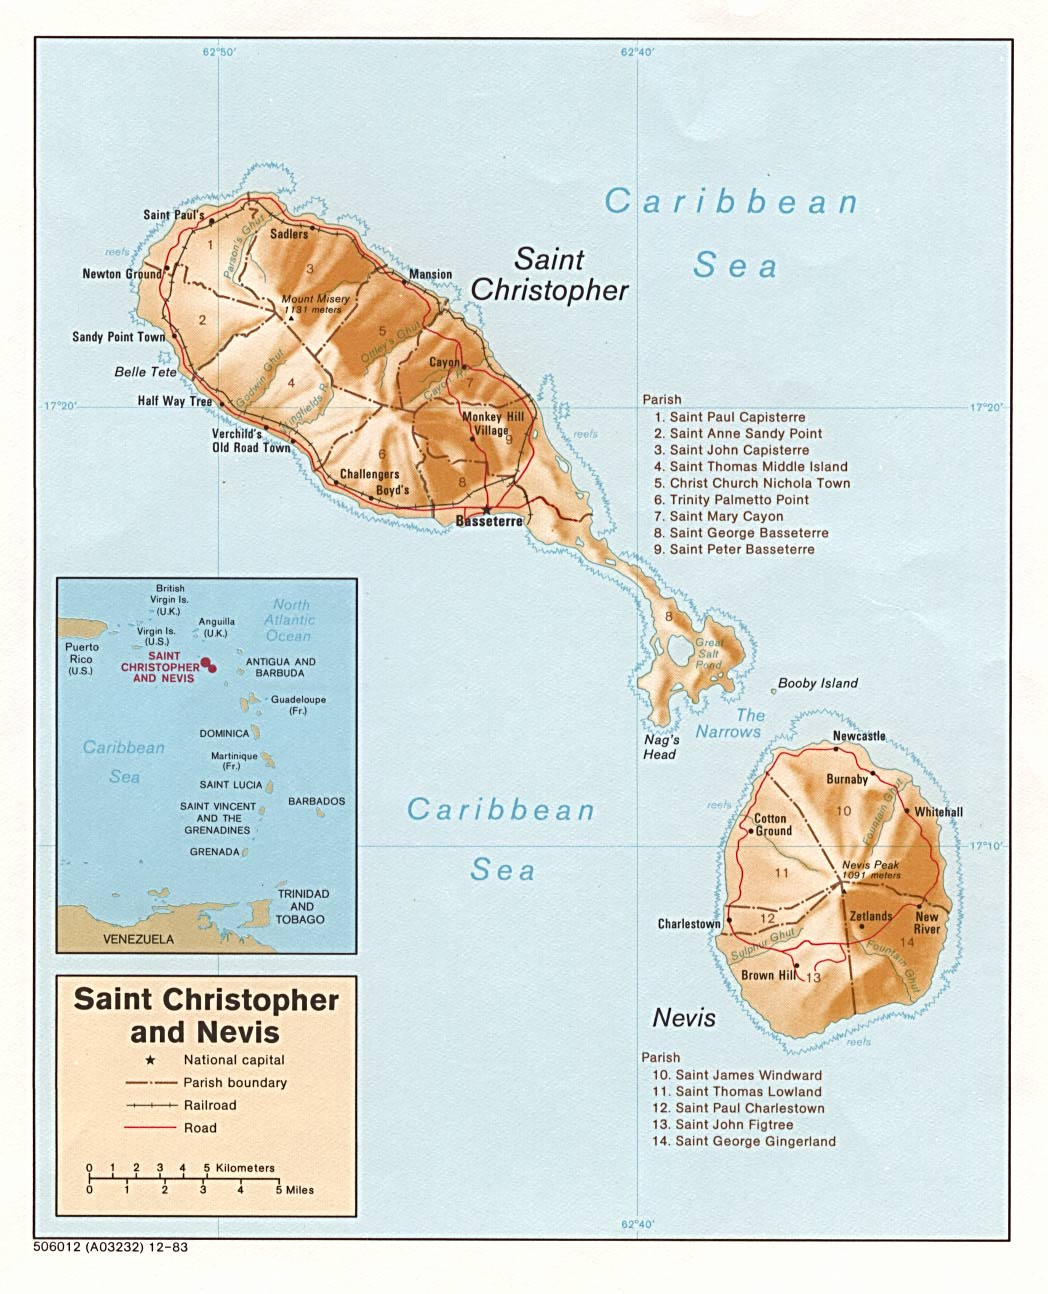 (Saint Kitts) Saint Christopher and Nevis Shaded Relief Map